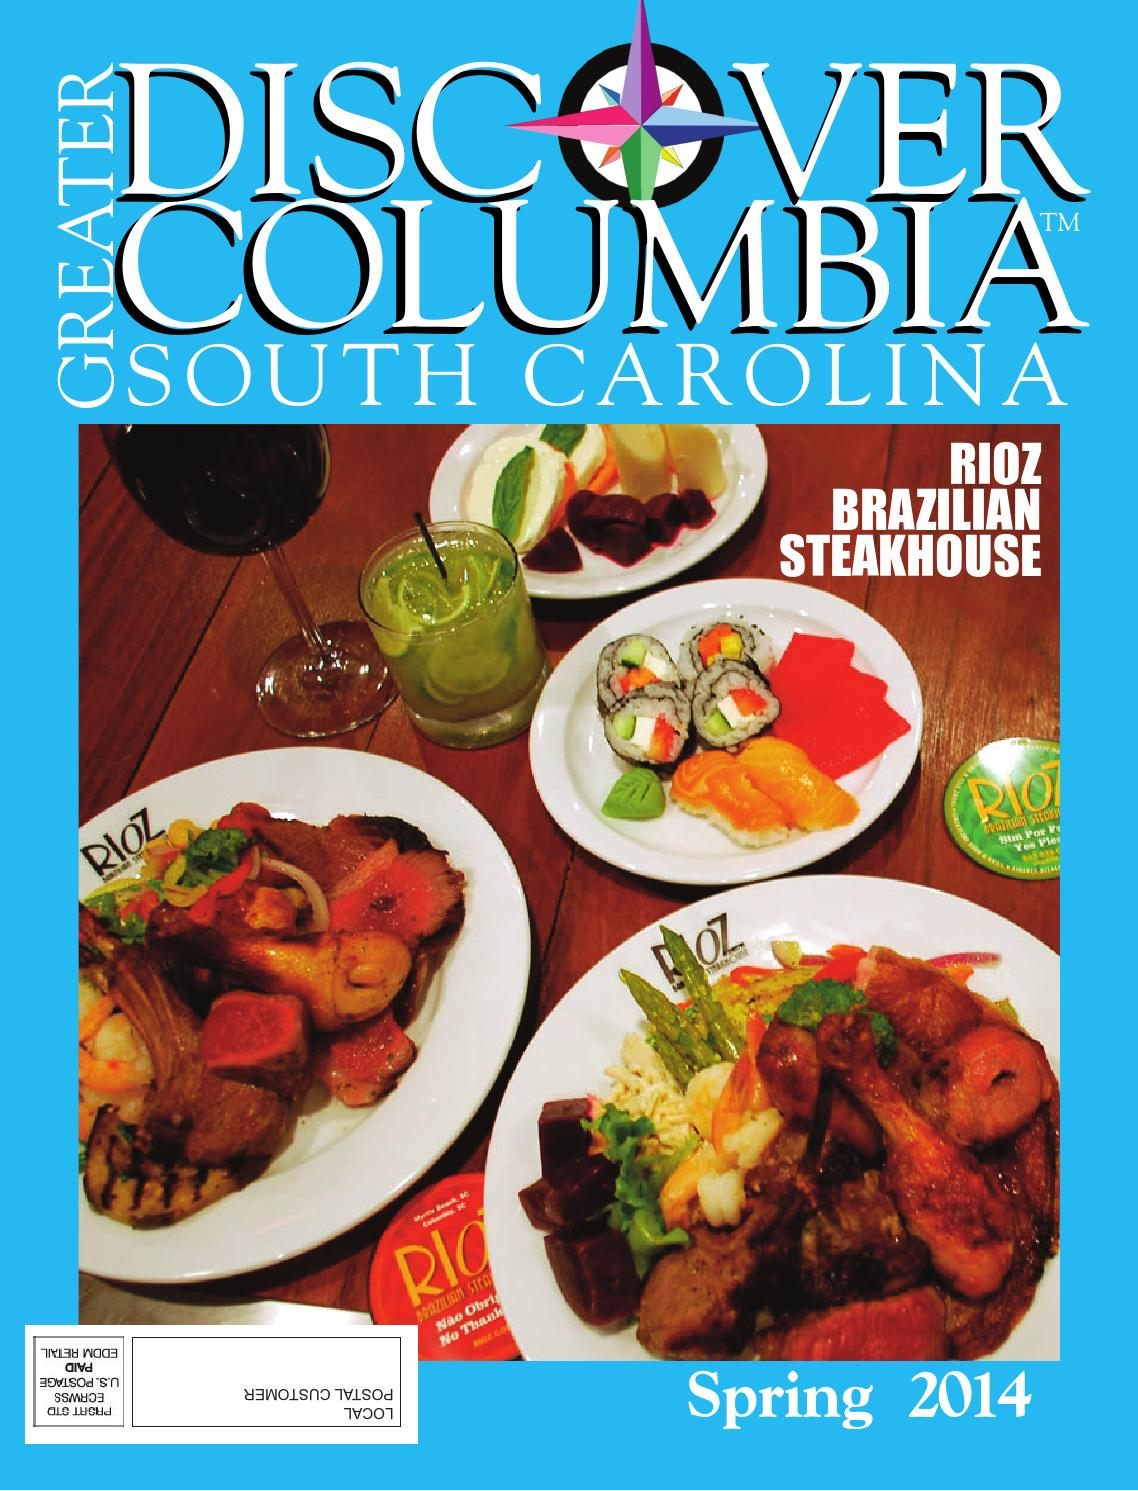 2014 Spring Discover Columbia Issue